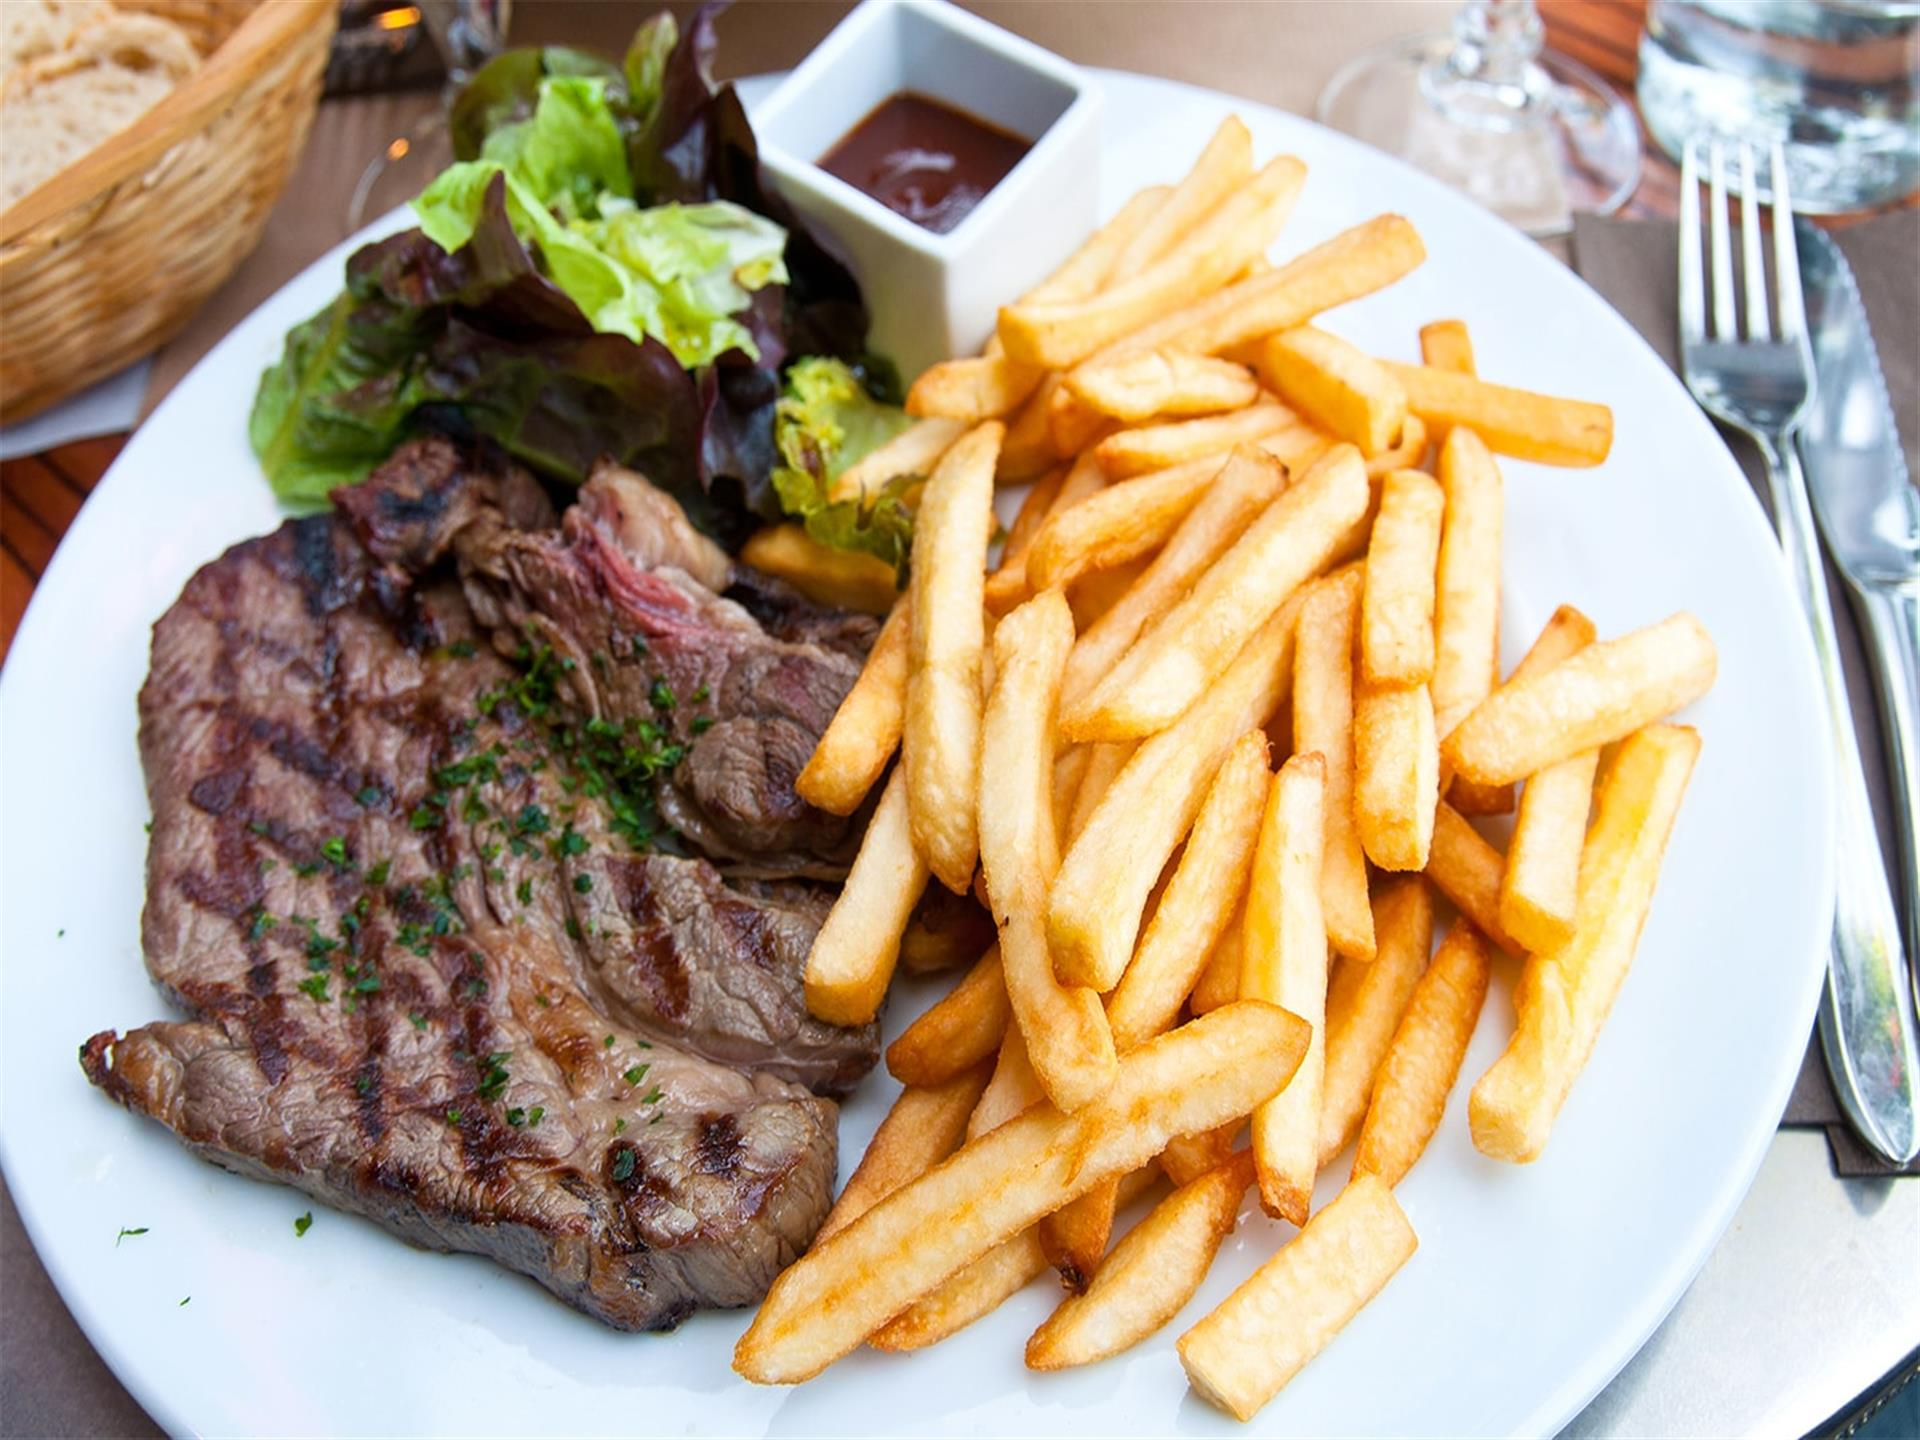 Steak with French Fries and a salad on a white plate